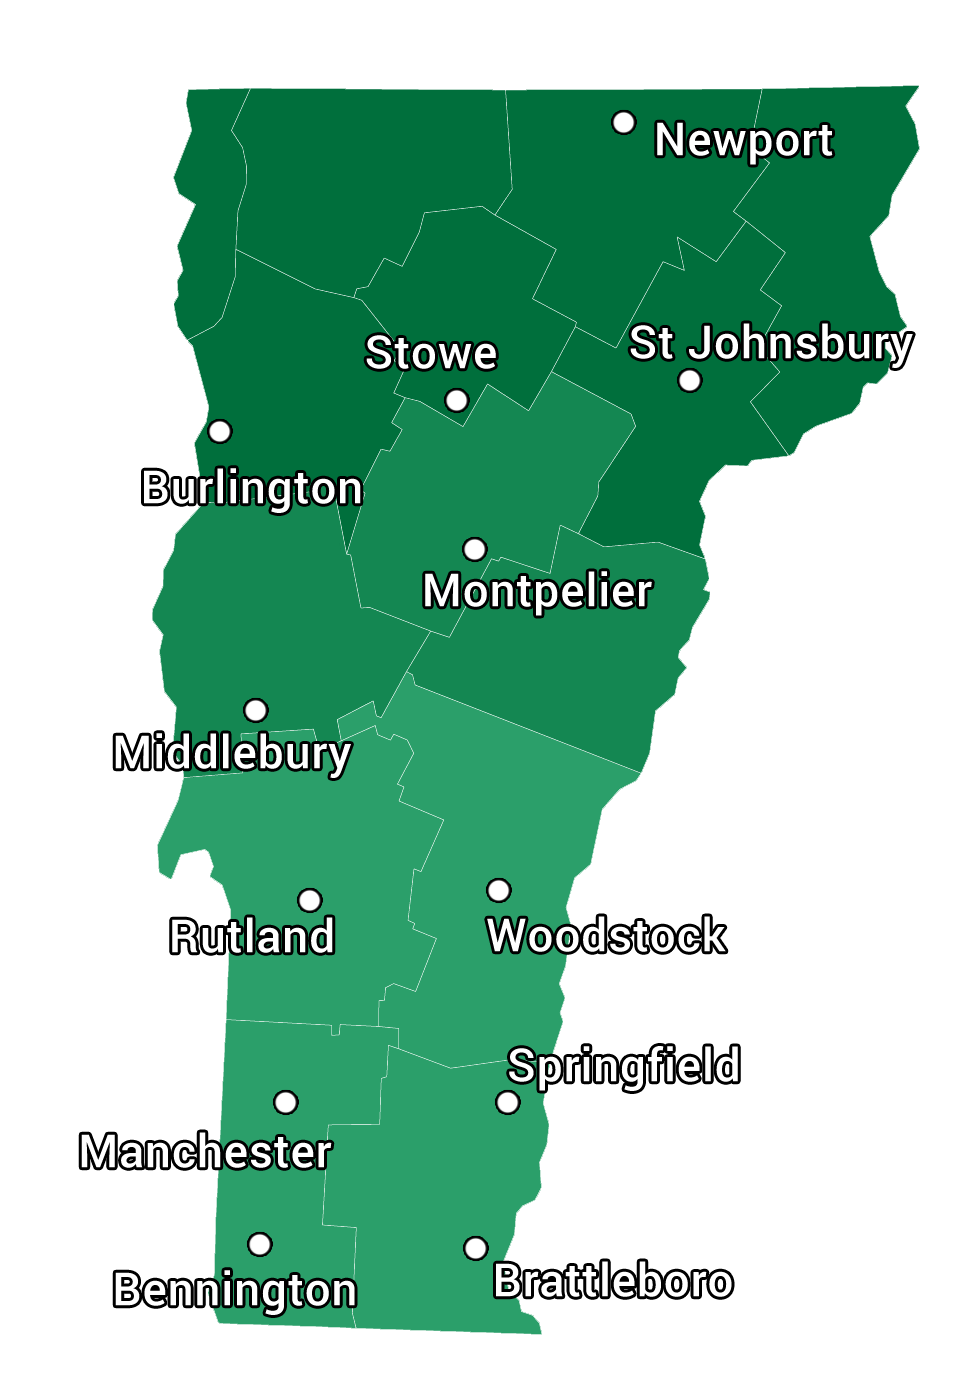 greyhound bus usa map with Getting To Vermont on Denver Union Station in addition South Dakota furthermore mute furthermore Philadelphia At The Crossroads together with Miami Metrorail Map.